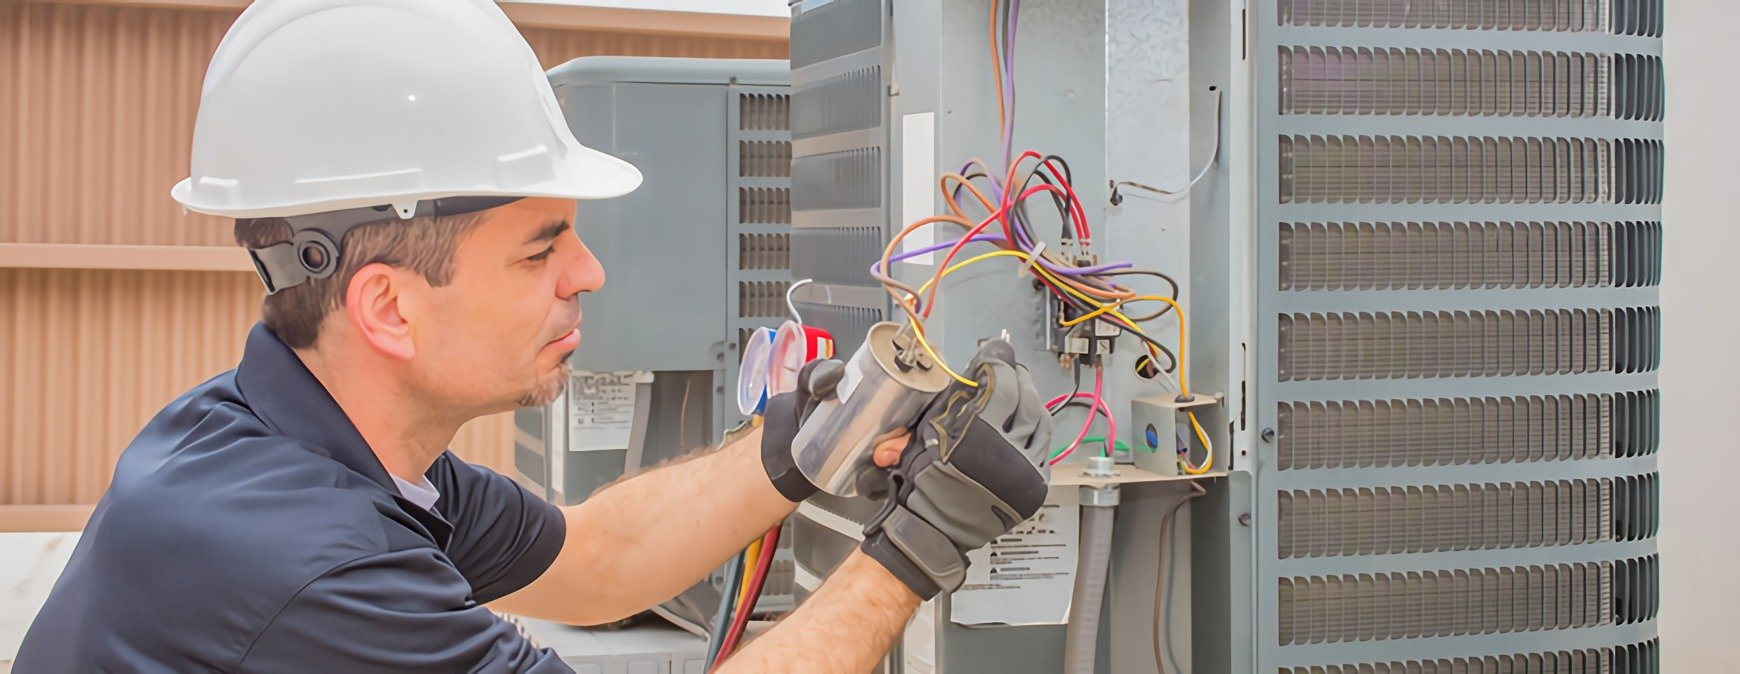 hvac technician using safety gloves